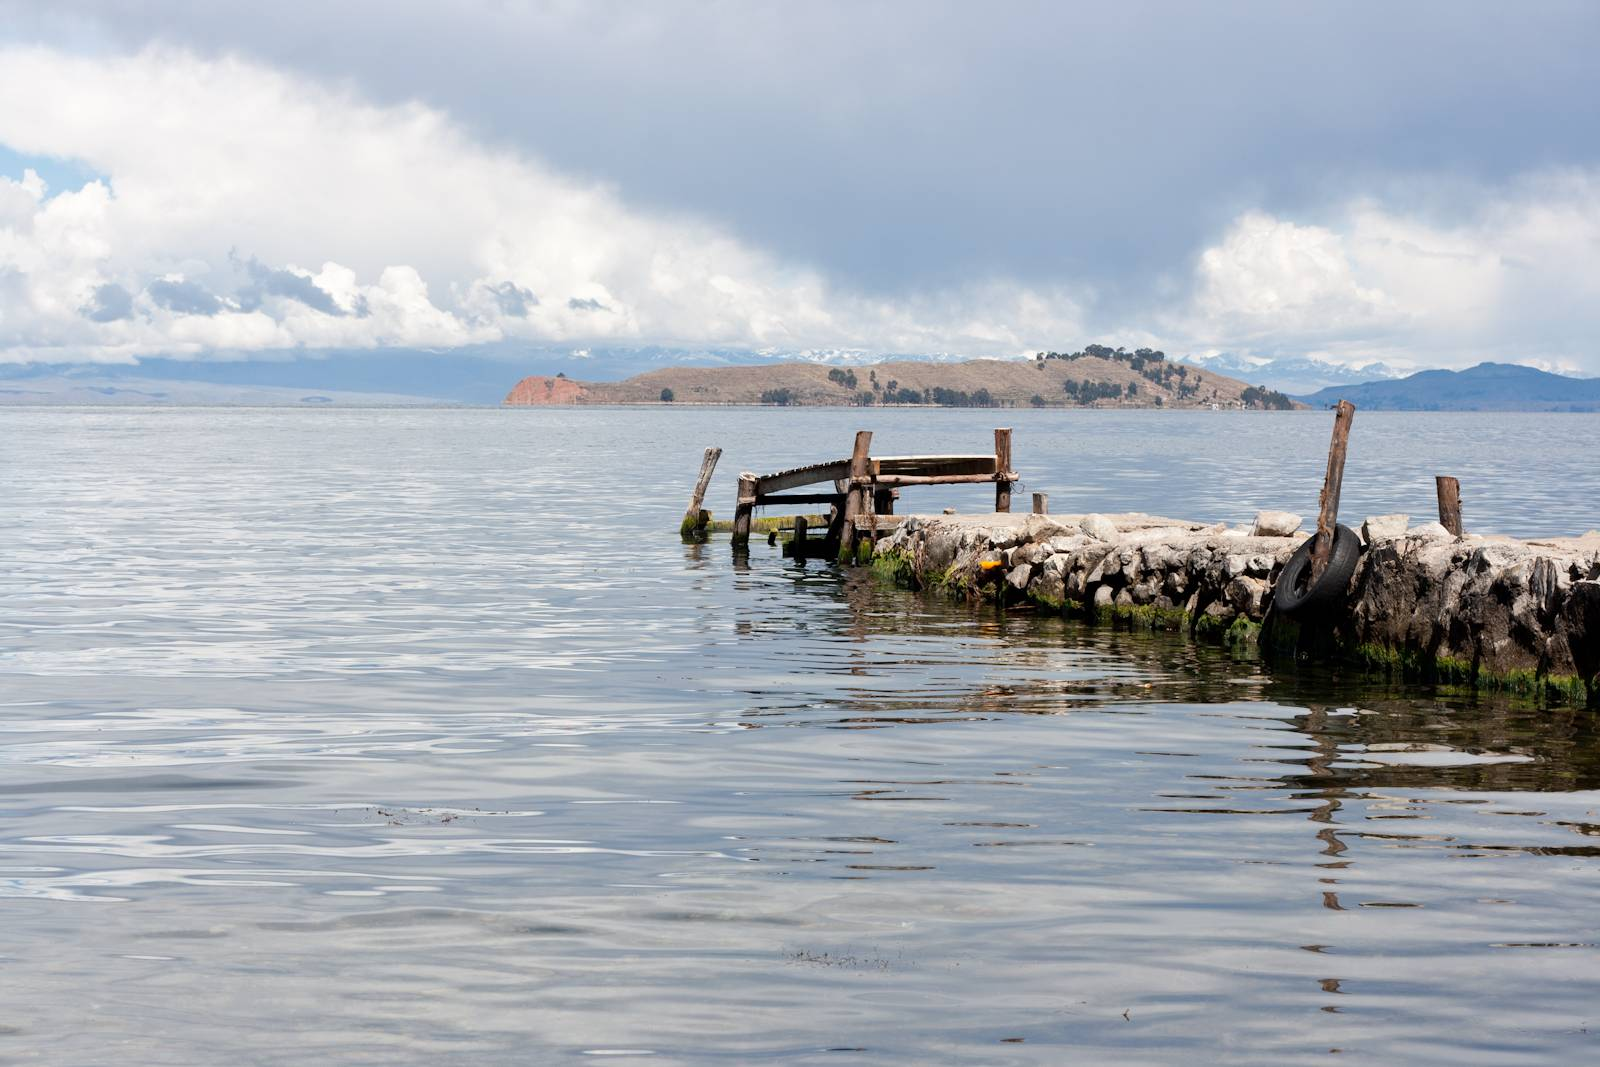 Photo 1: Isla del Sol - Lac Titicaca